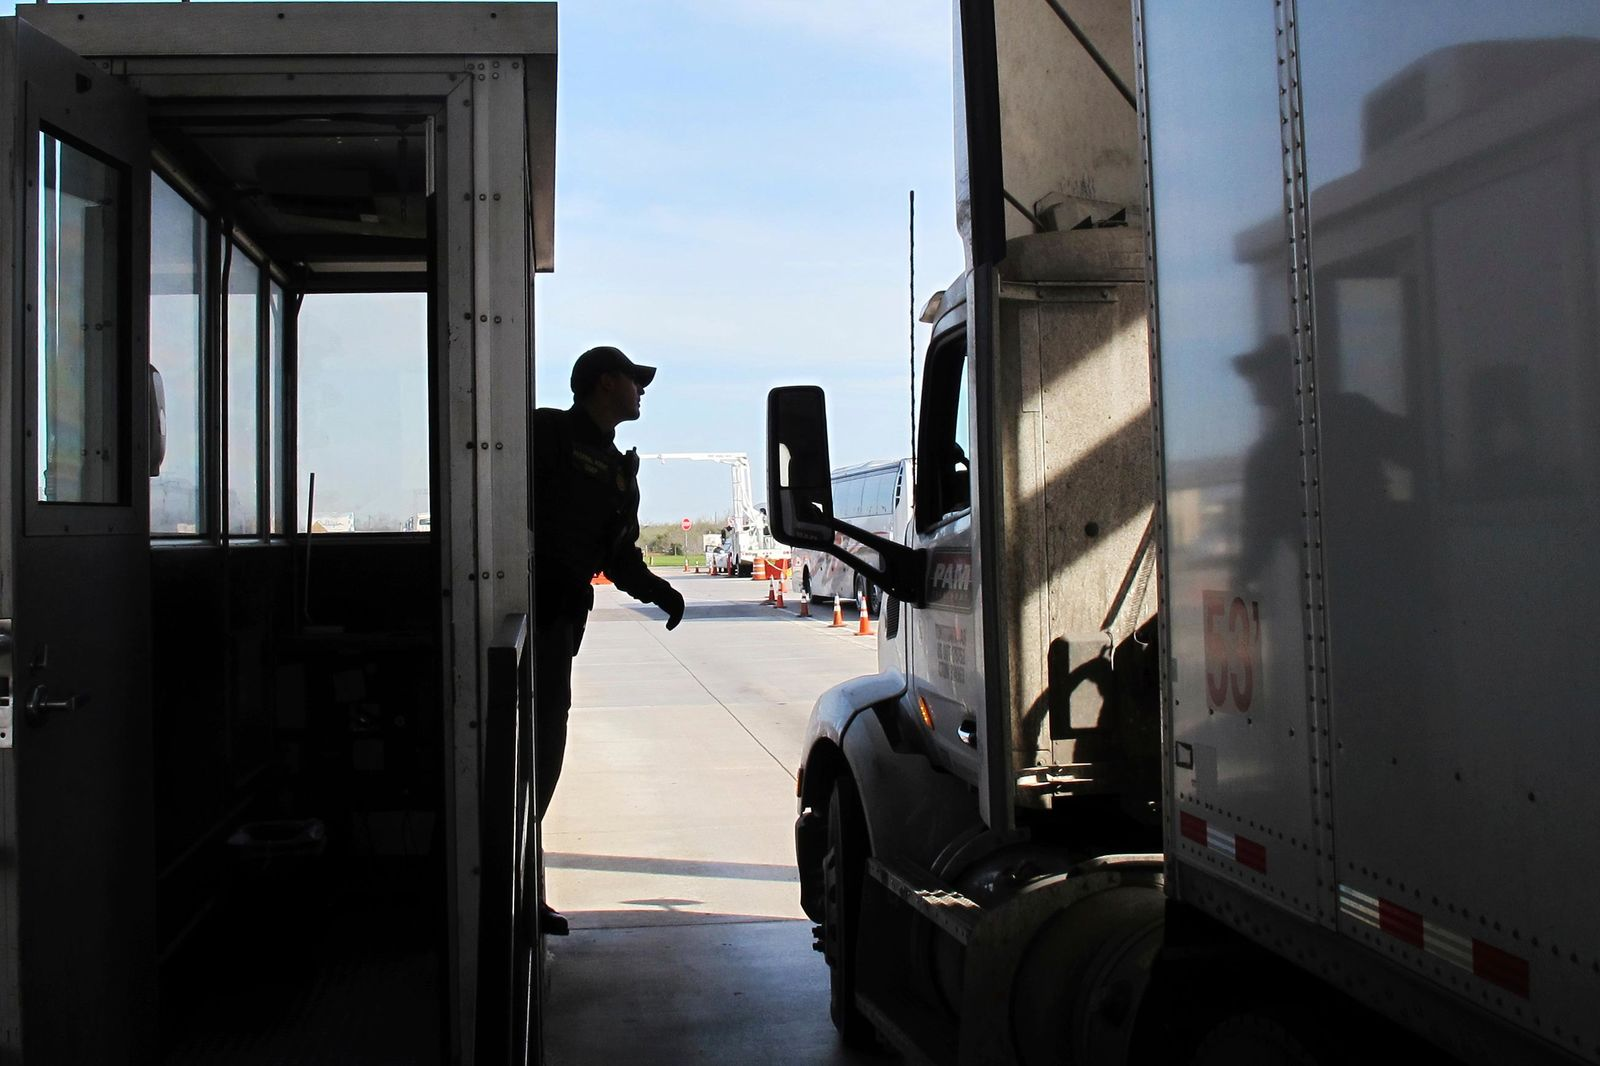 Border Patrol agent Eric Mendoza speaks to the driver of a tractor-trailer passing through the Laredo North vehicle checkpoint in Laredo, Texas, on Friday, Feb. 2, 2018. Smugglers routinely pack people entering the country illegally or drugs into tractor-trailers, counting on the vehicles not being opened at the inspection site. (AP Photo/Nomaan Merchant)